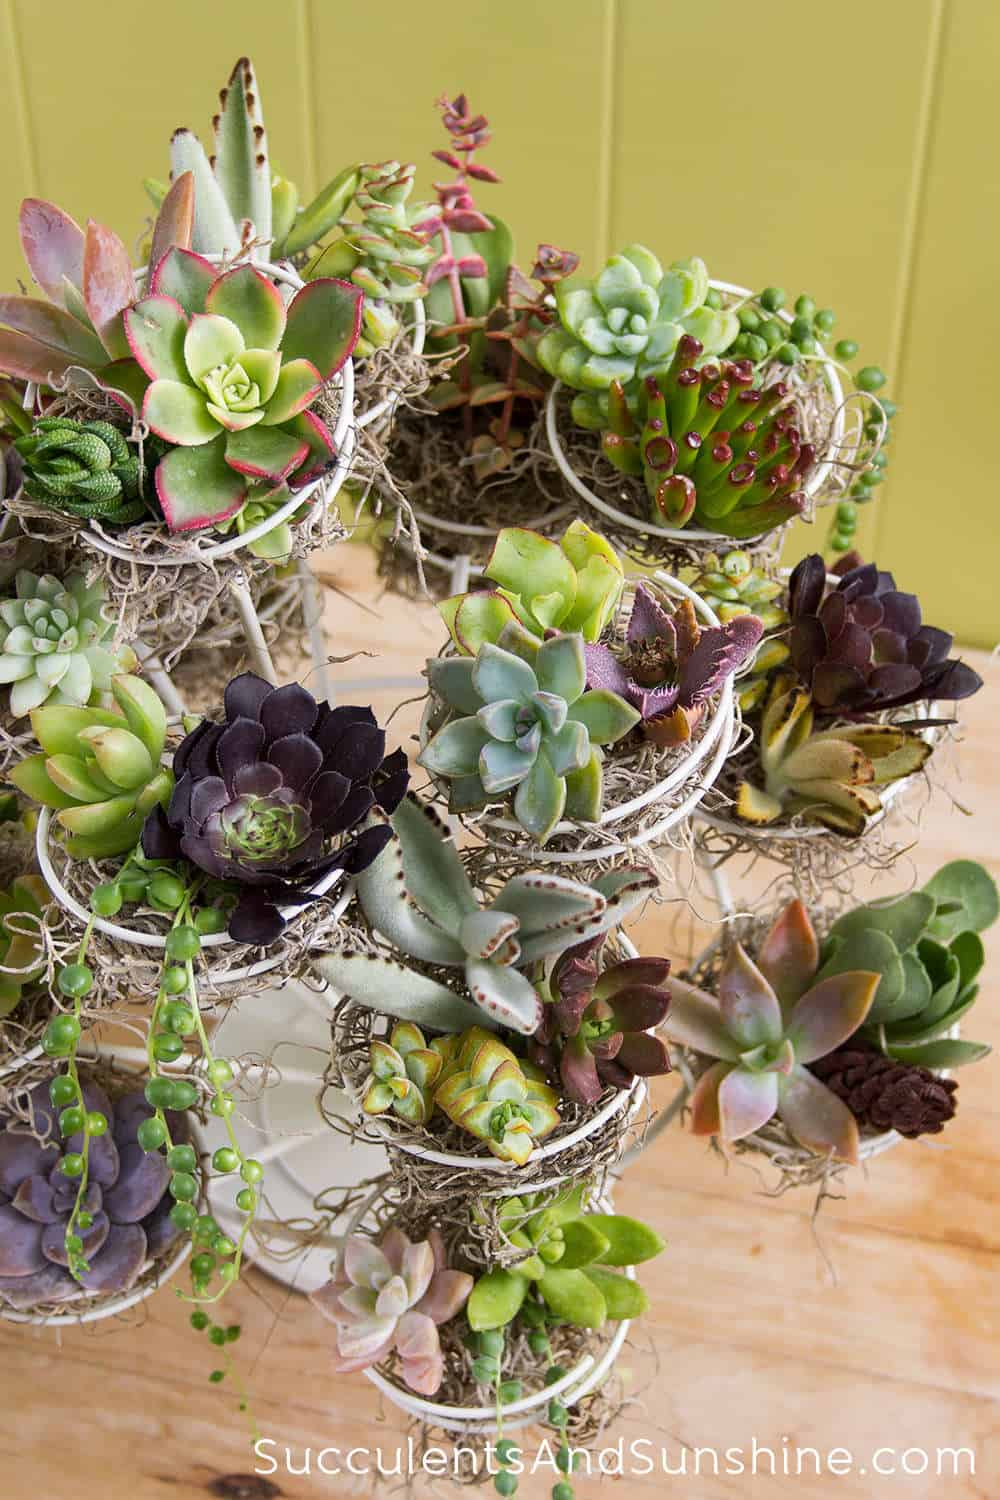 USE A METALLIC SUPPORT TO NESTLE DELICATE SUCCULENT FLOWERS